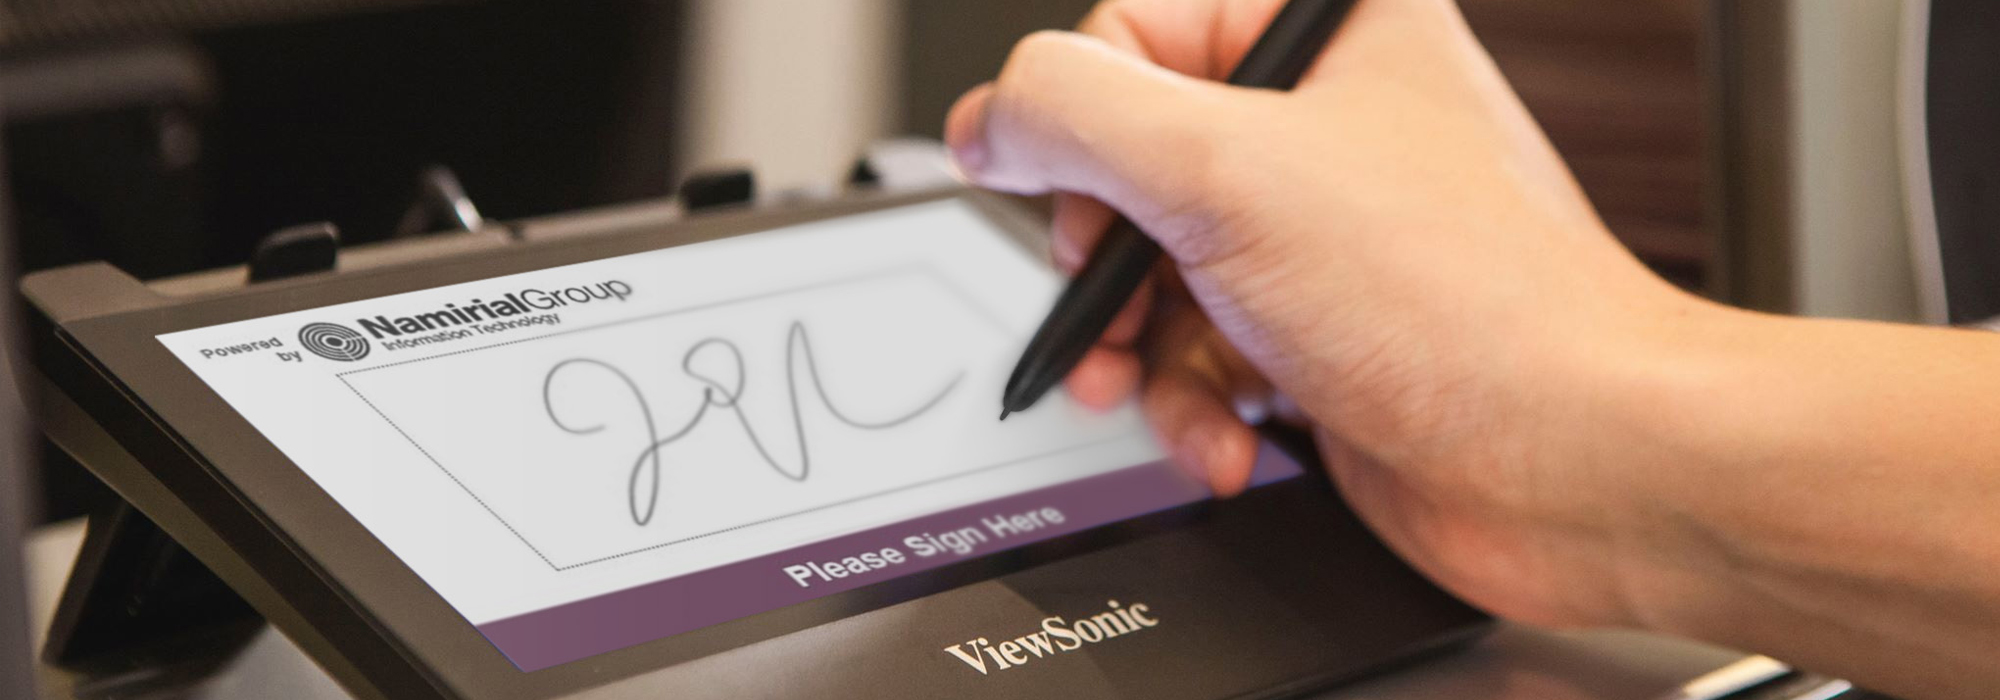 ViewSonic to Offer eSignature Solutions Powered by Namirial Software